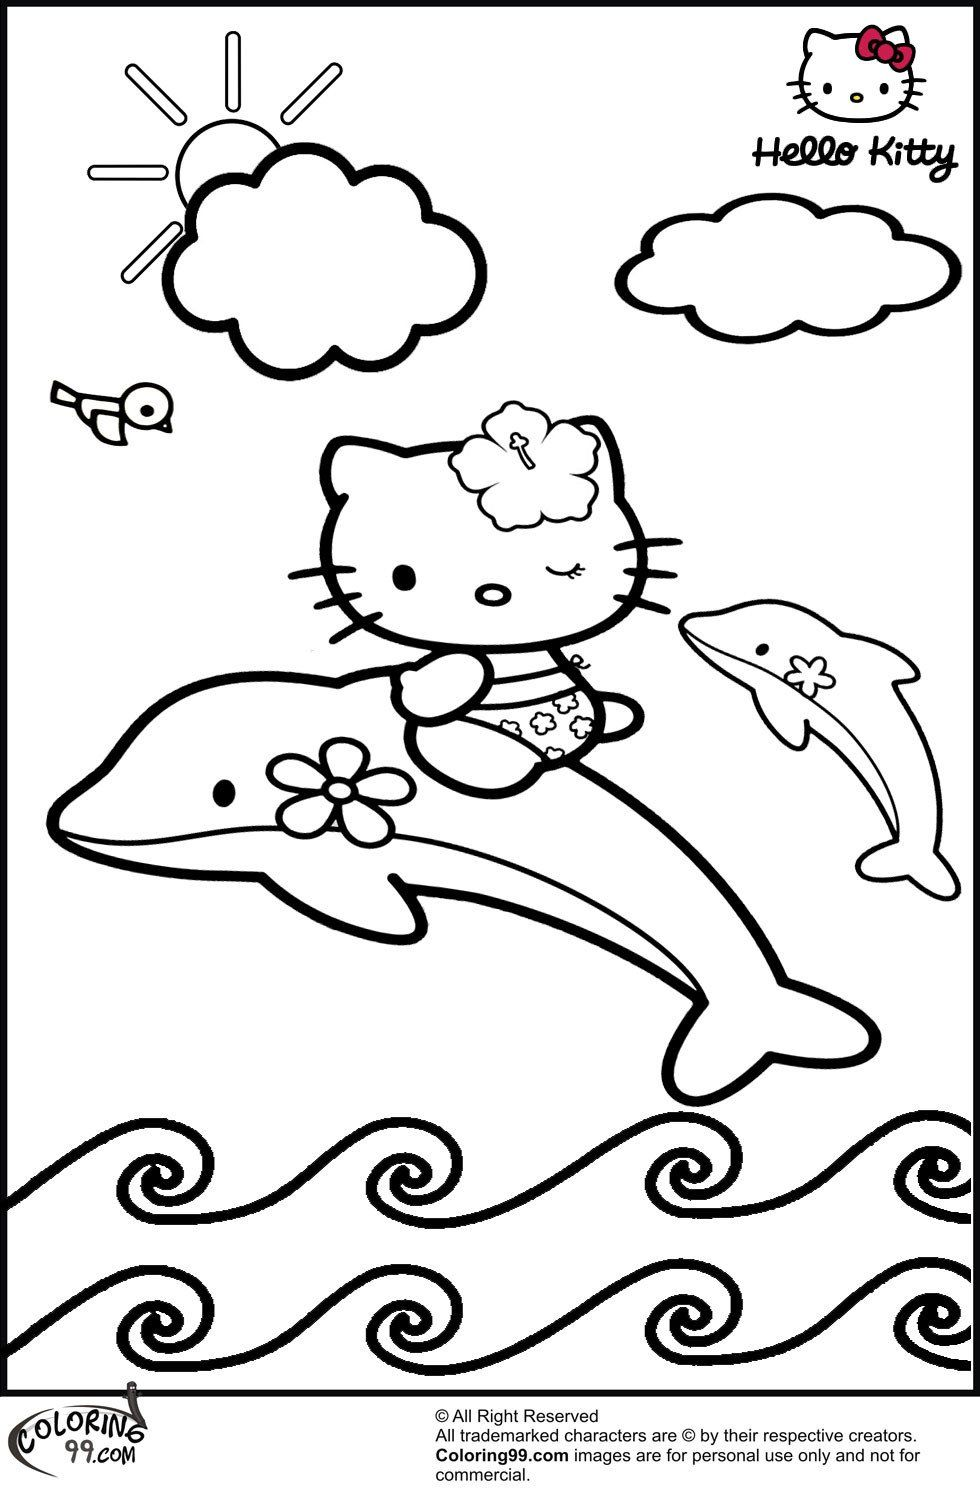 Hello Kitty Coloring Paper Hello Kitty Dolphin Coloring Pages Get Coloring Pages Kitty Coloring Dolphin Coloring Pages Hello Kitty Coloring